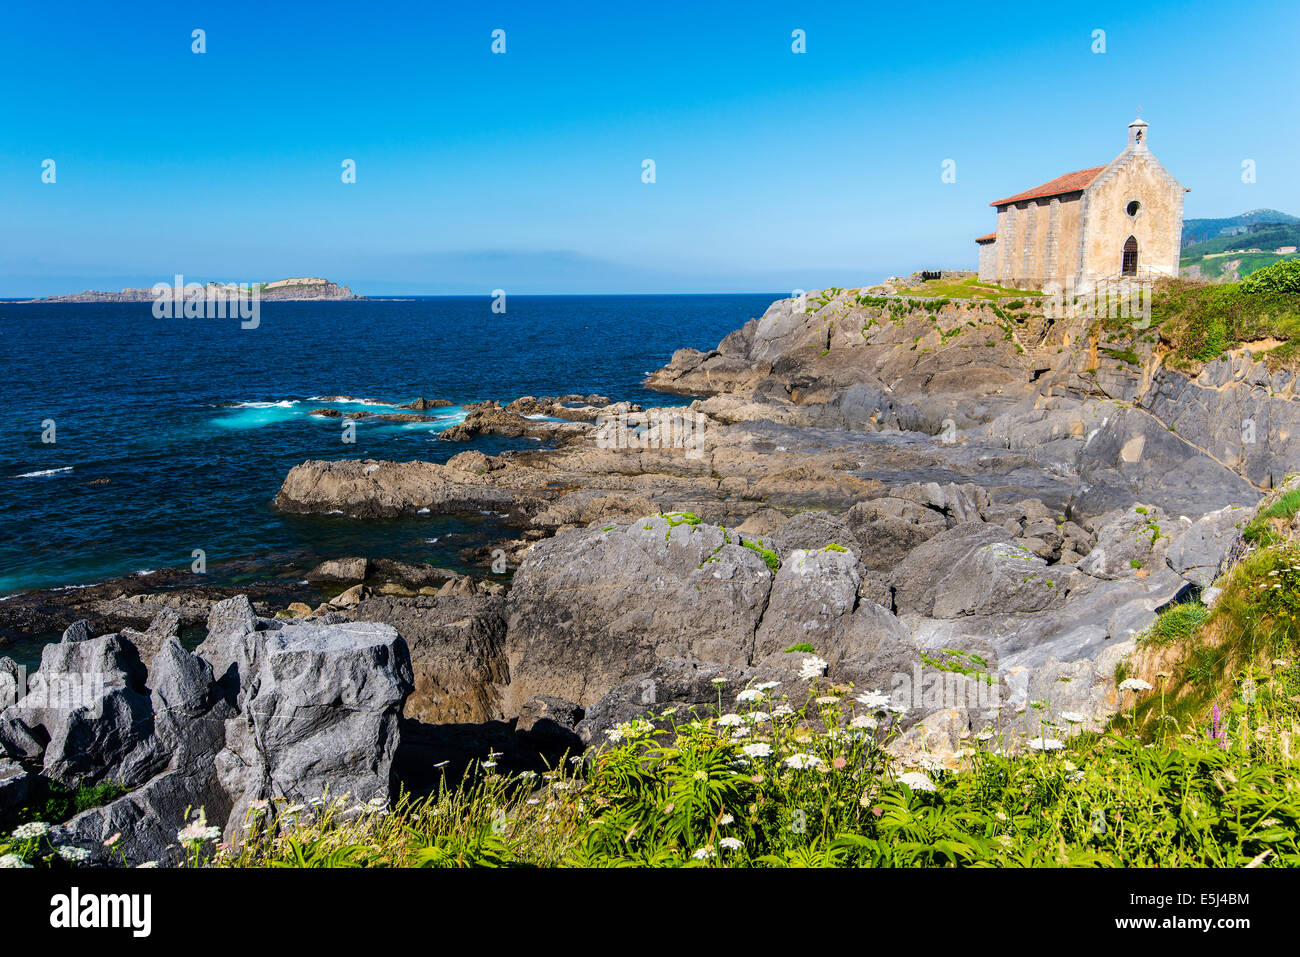 Chapel of Santa Catalina, Mundaka, Biscay, Basque Country, Spain - Stock Image